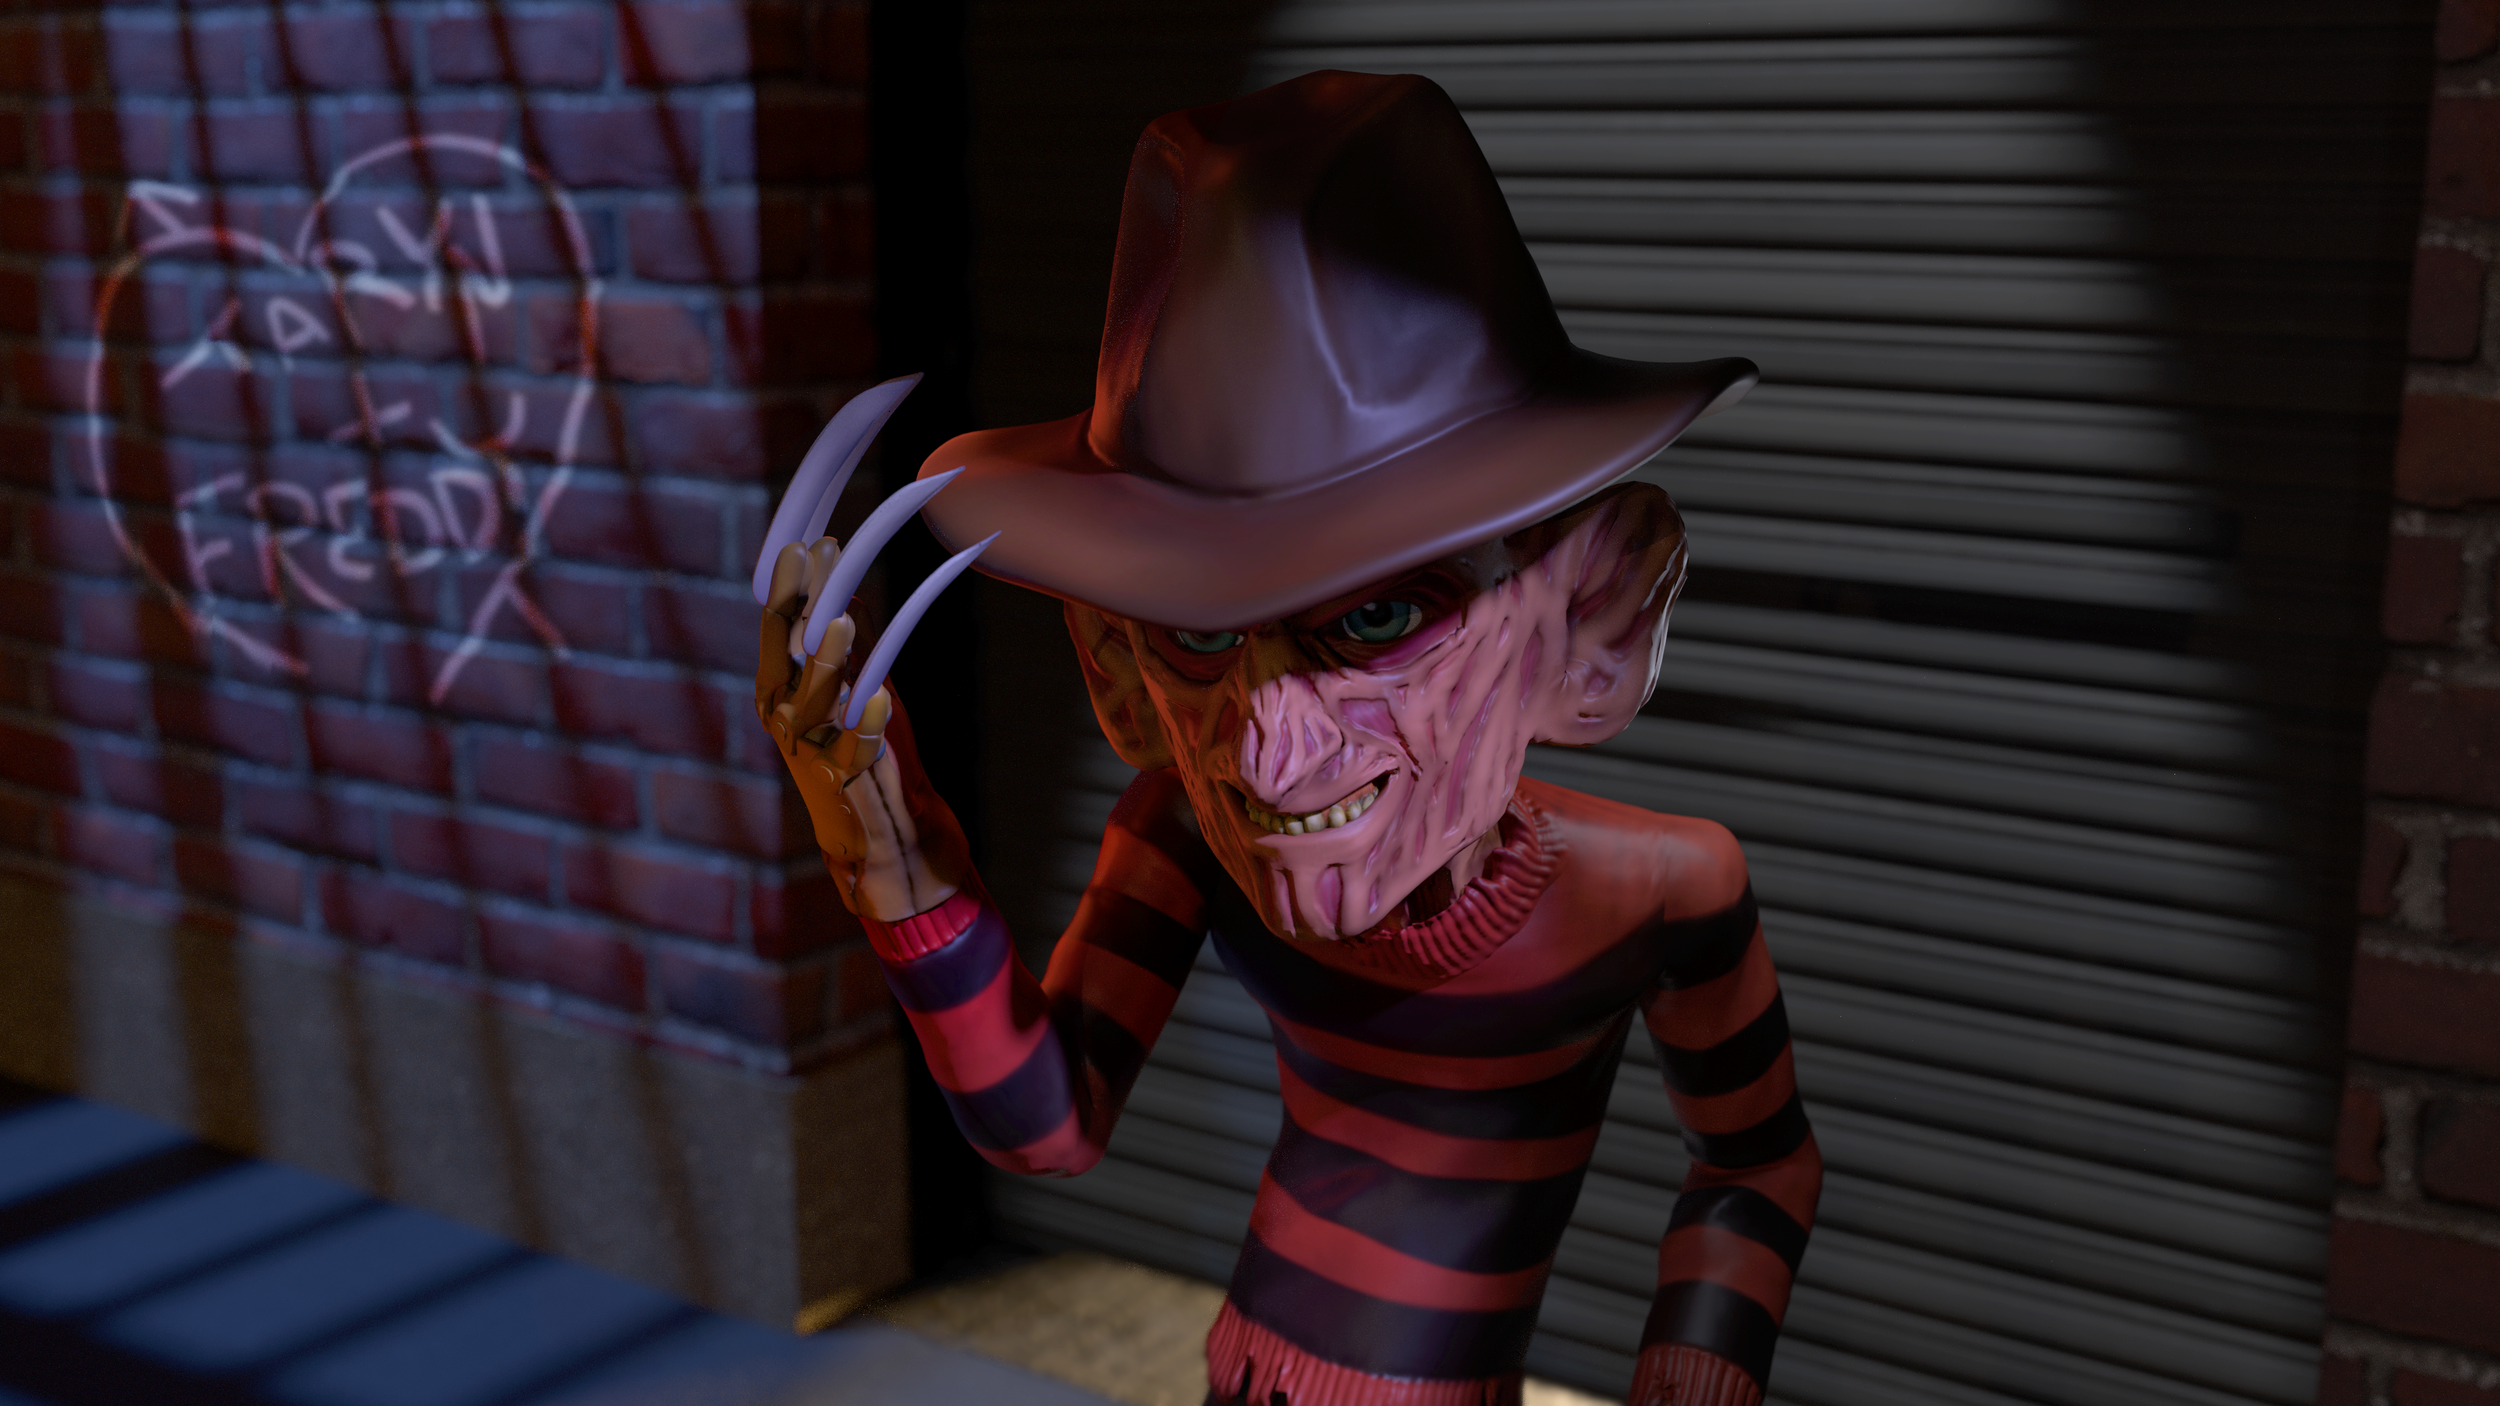 Freddy_Alley_Close bright.png